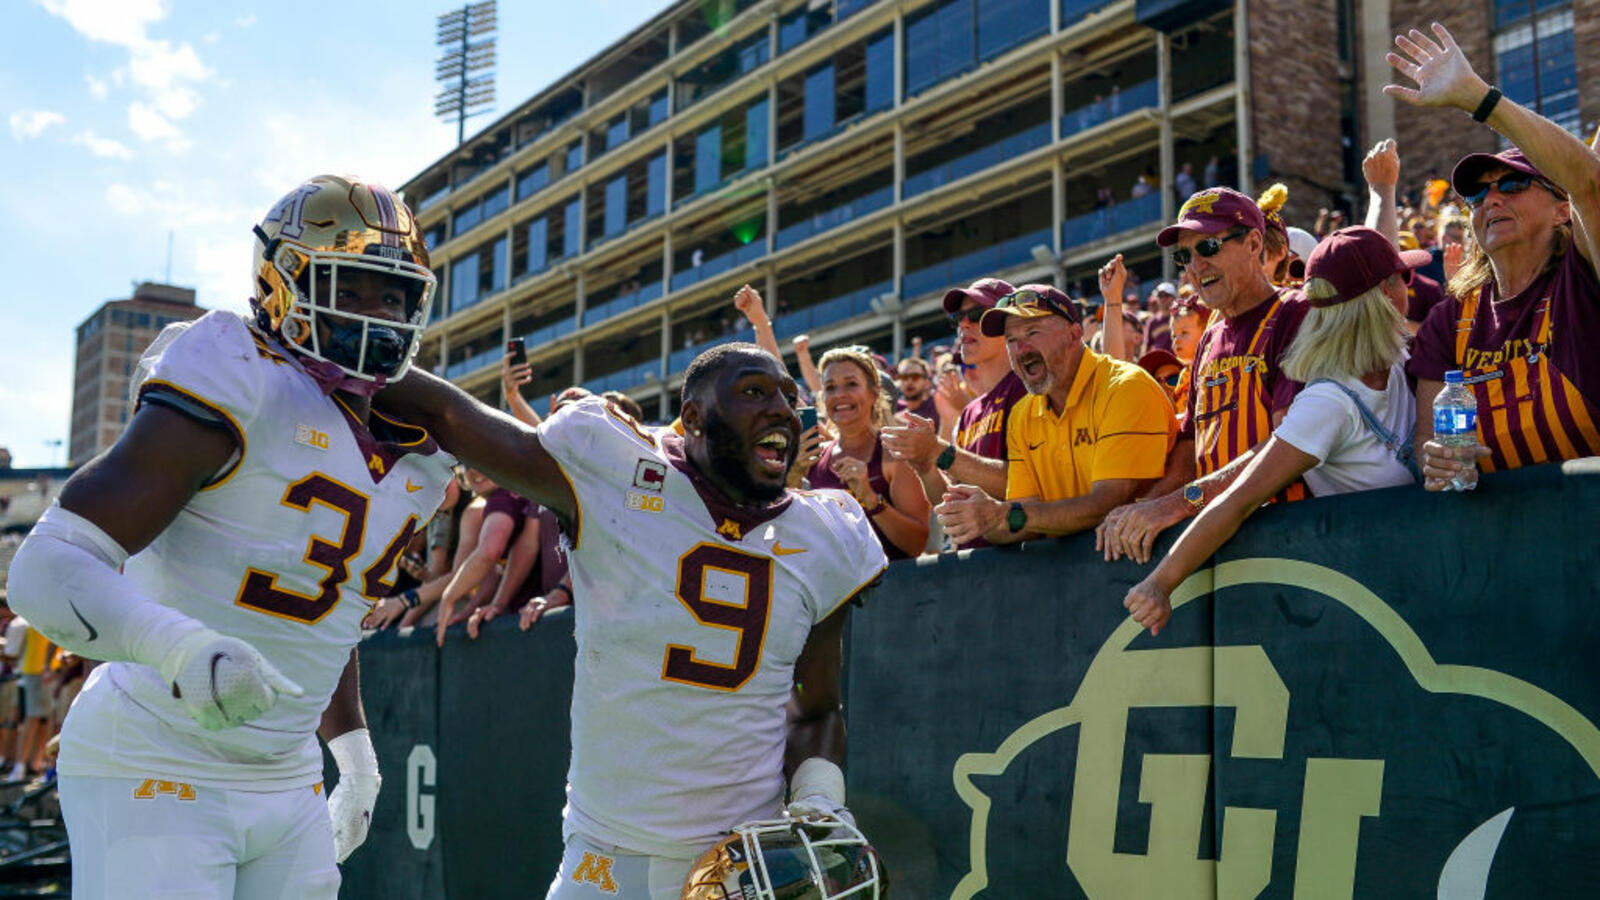 Gophers stomp Buffaloes to win 30-0 on the road in Colorado | #KFANGophers